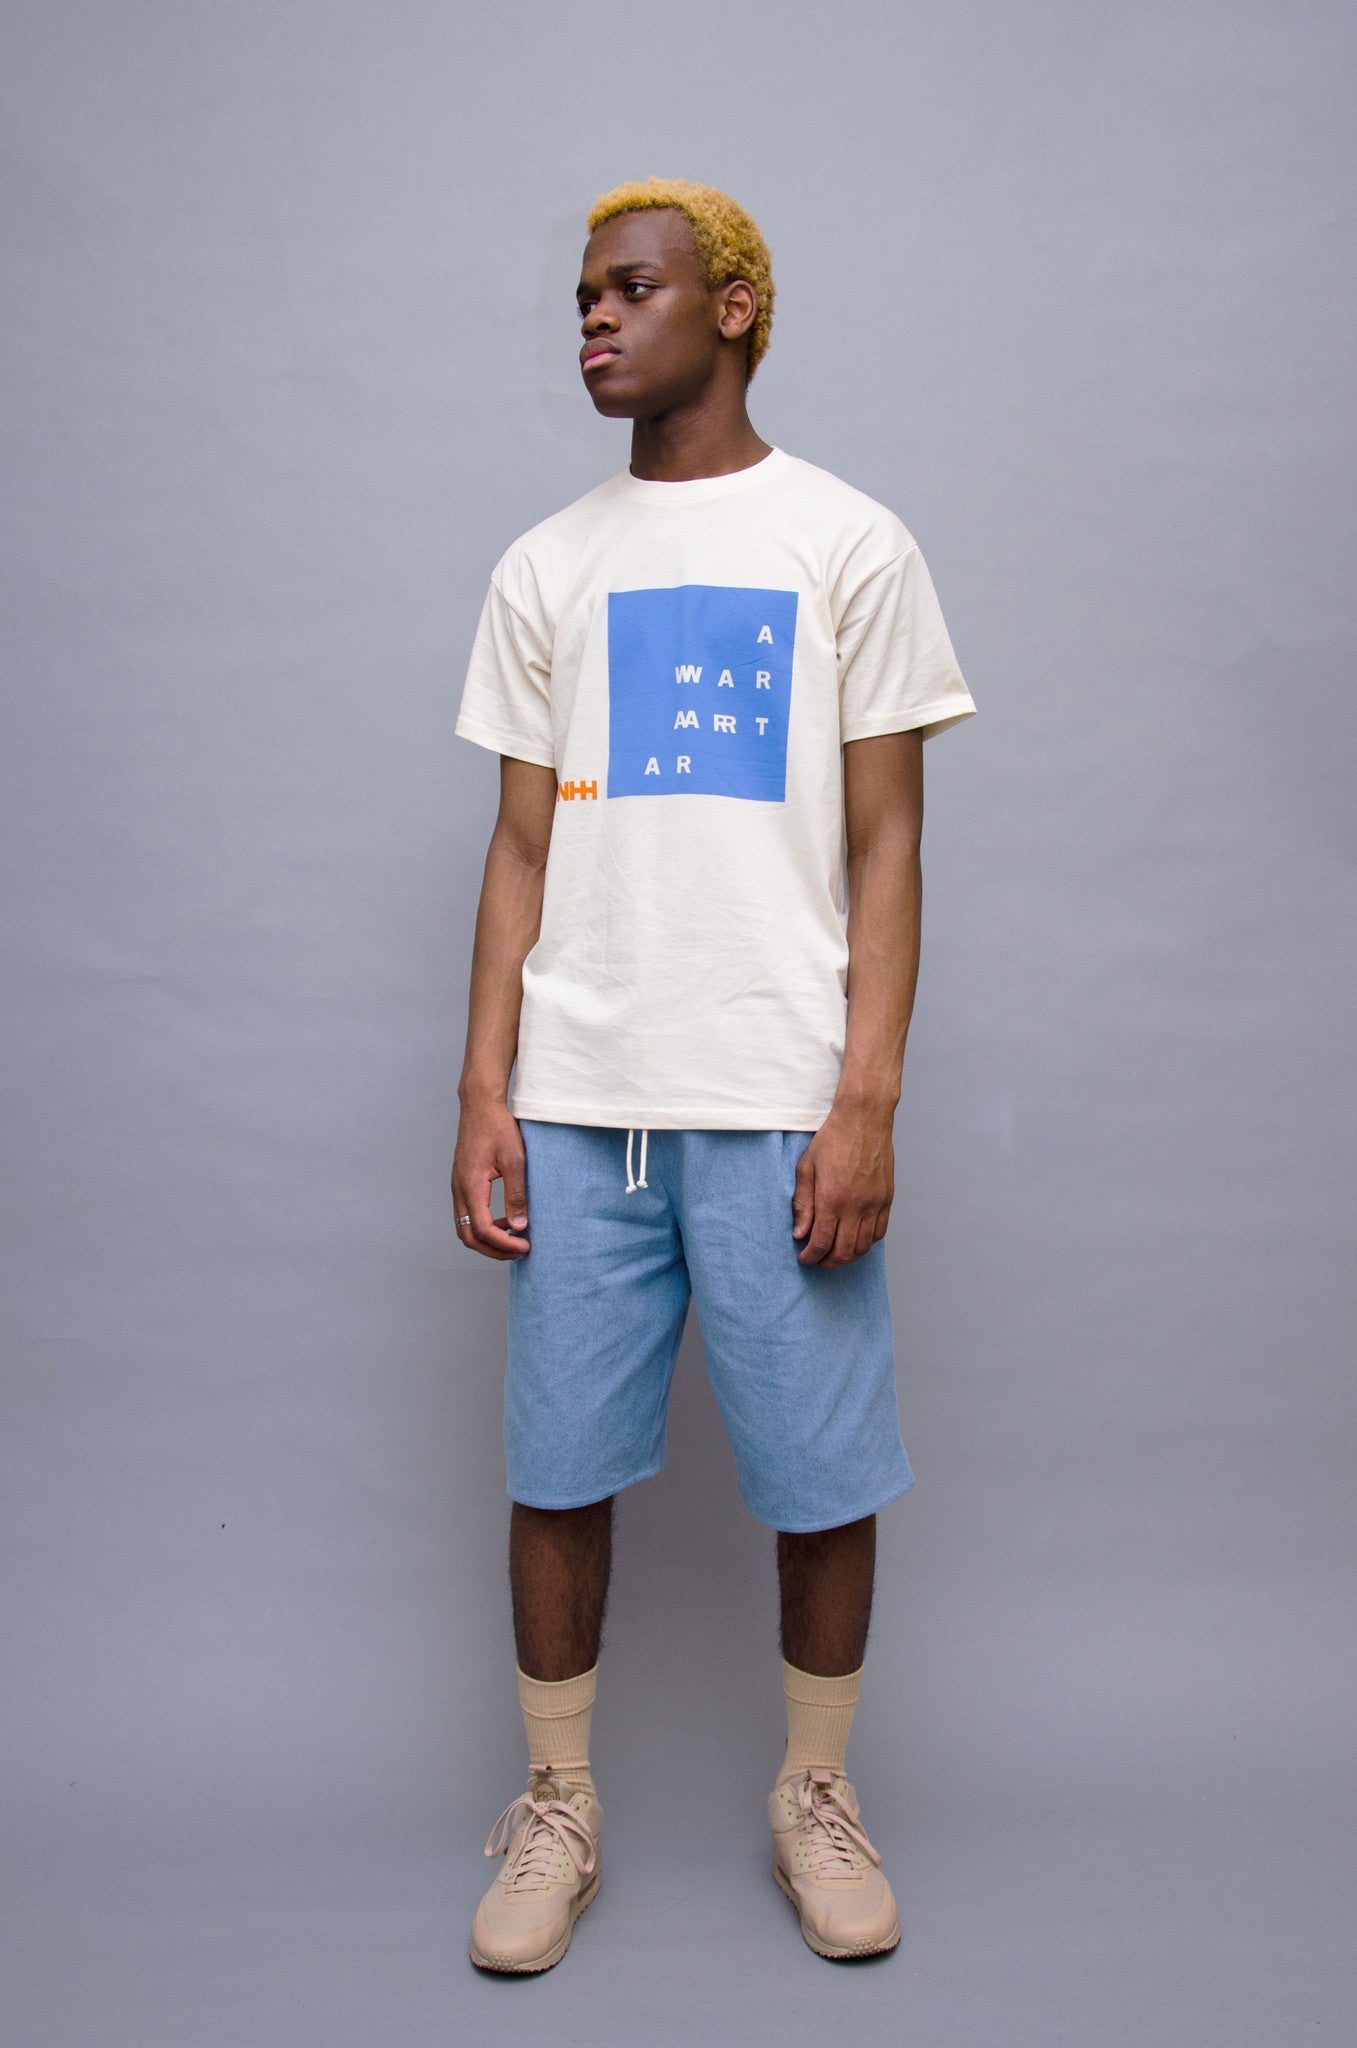 The North Hill Two-tone Warrior Tee is a made in France t-shirt